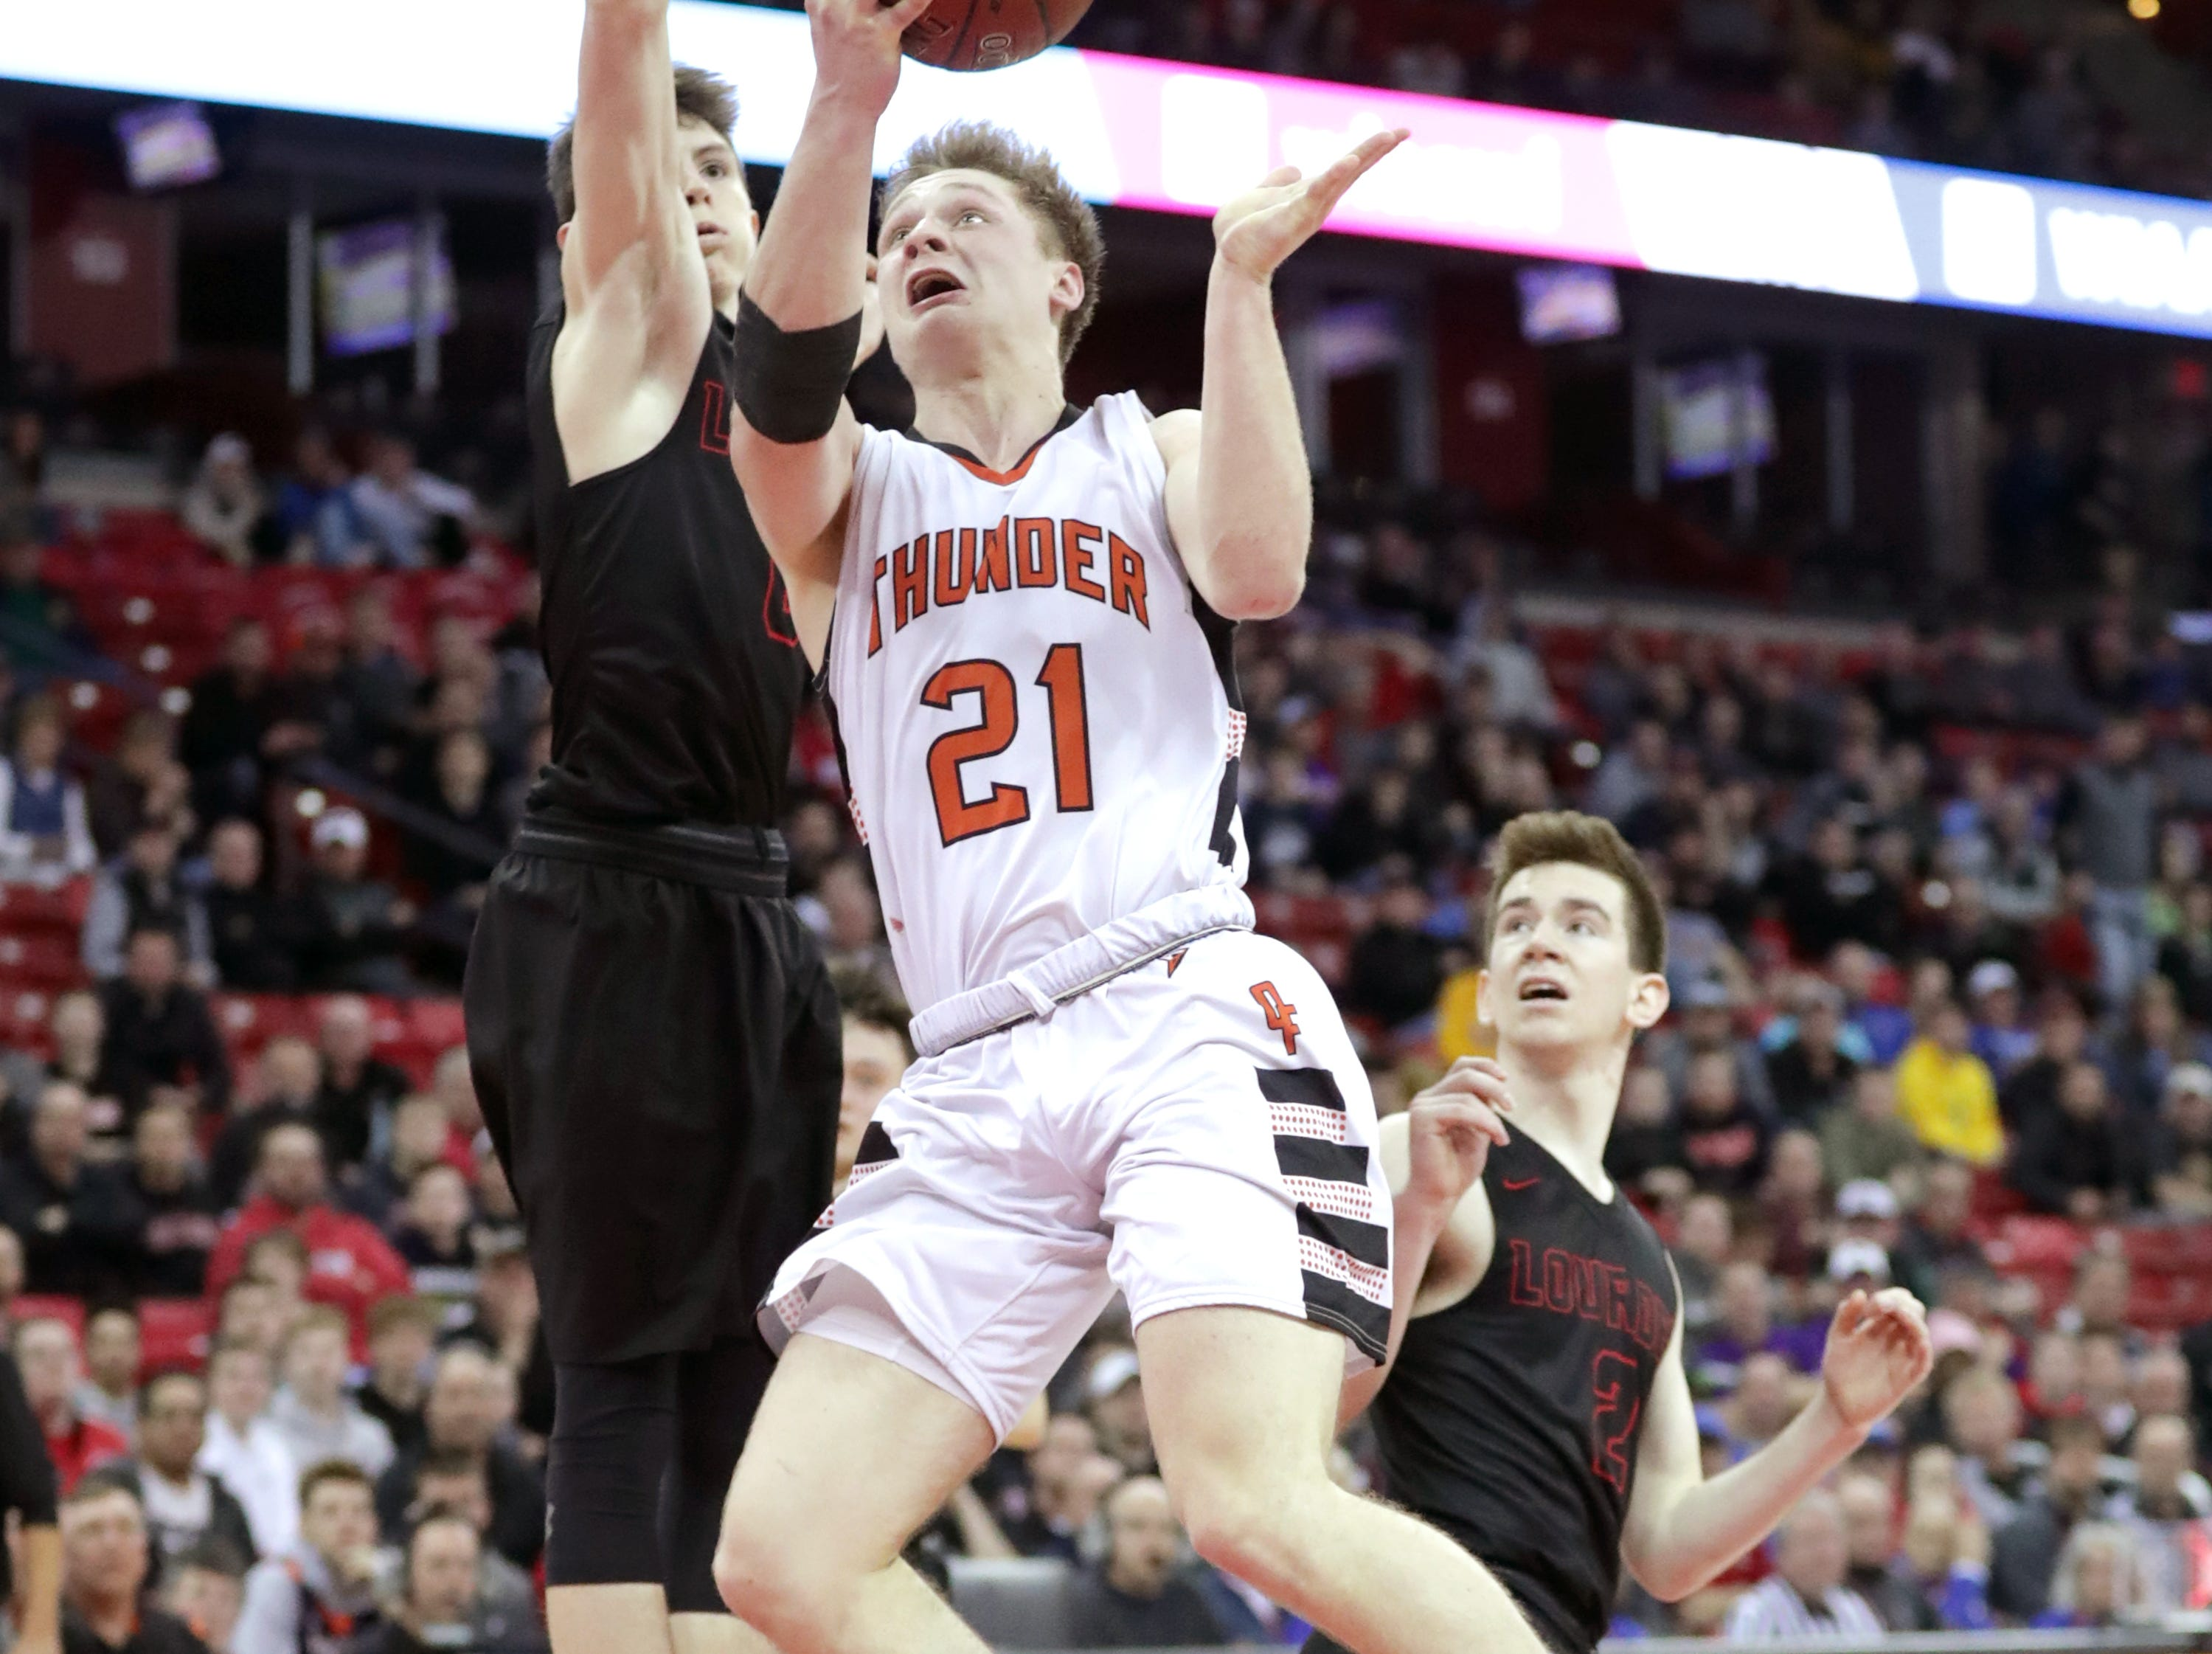 Lourdes Academy's and #0 Hayden Jones against Osseo-Fairchild High School's #21 Logabn Mulhern during their WIAA Division 4 boys basketball state semifinal on Thursday, March 14, 2019, at the Kohl Center in Madison, Wis. Lourdes defeated Osseo-Fairchild 70 to 68.Wm. Glasheen/USA TODAY NETWORK-Wisconsin.